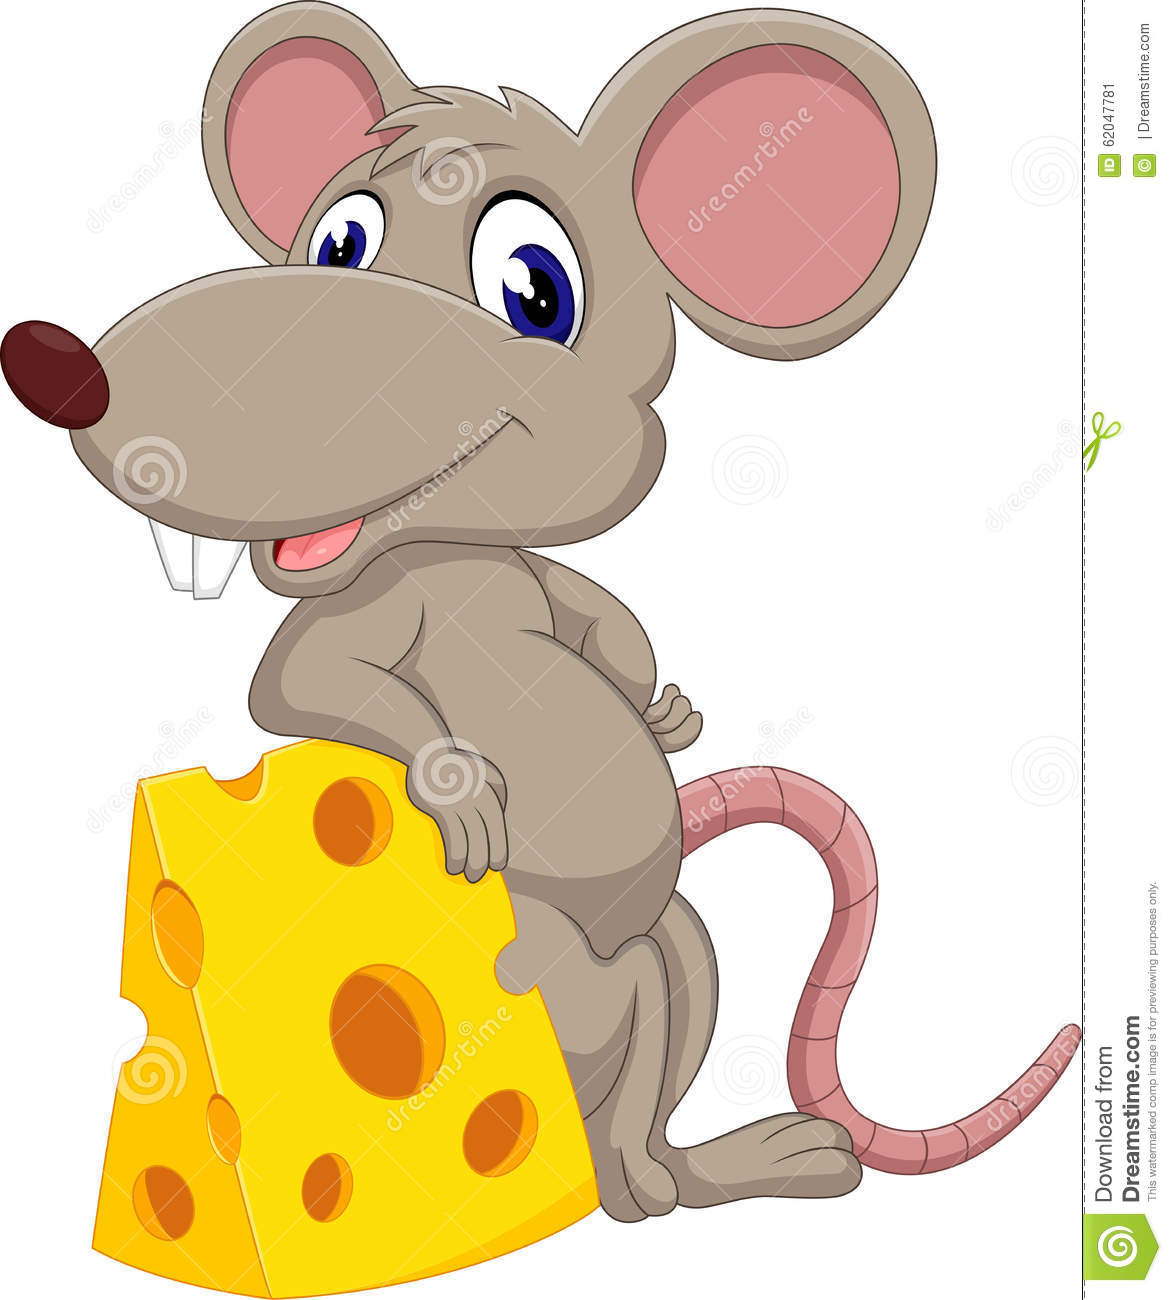 Cute Mouse Cartoon Stock Vector - Image: 62047781